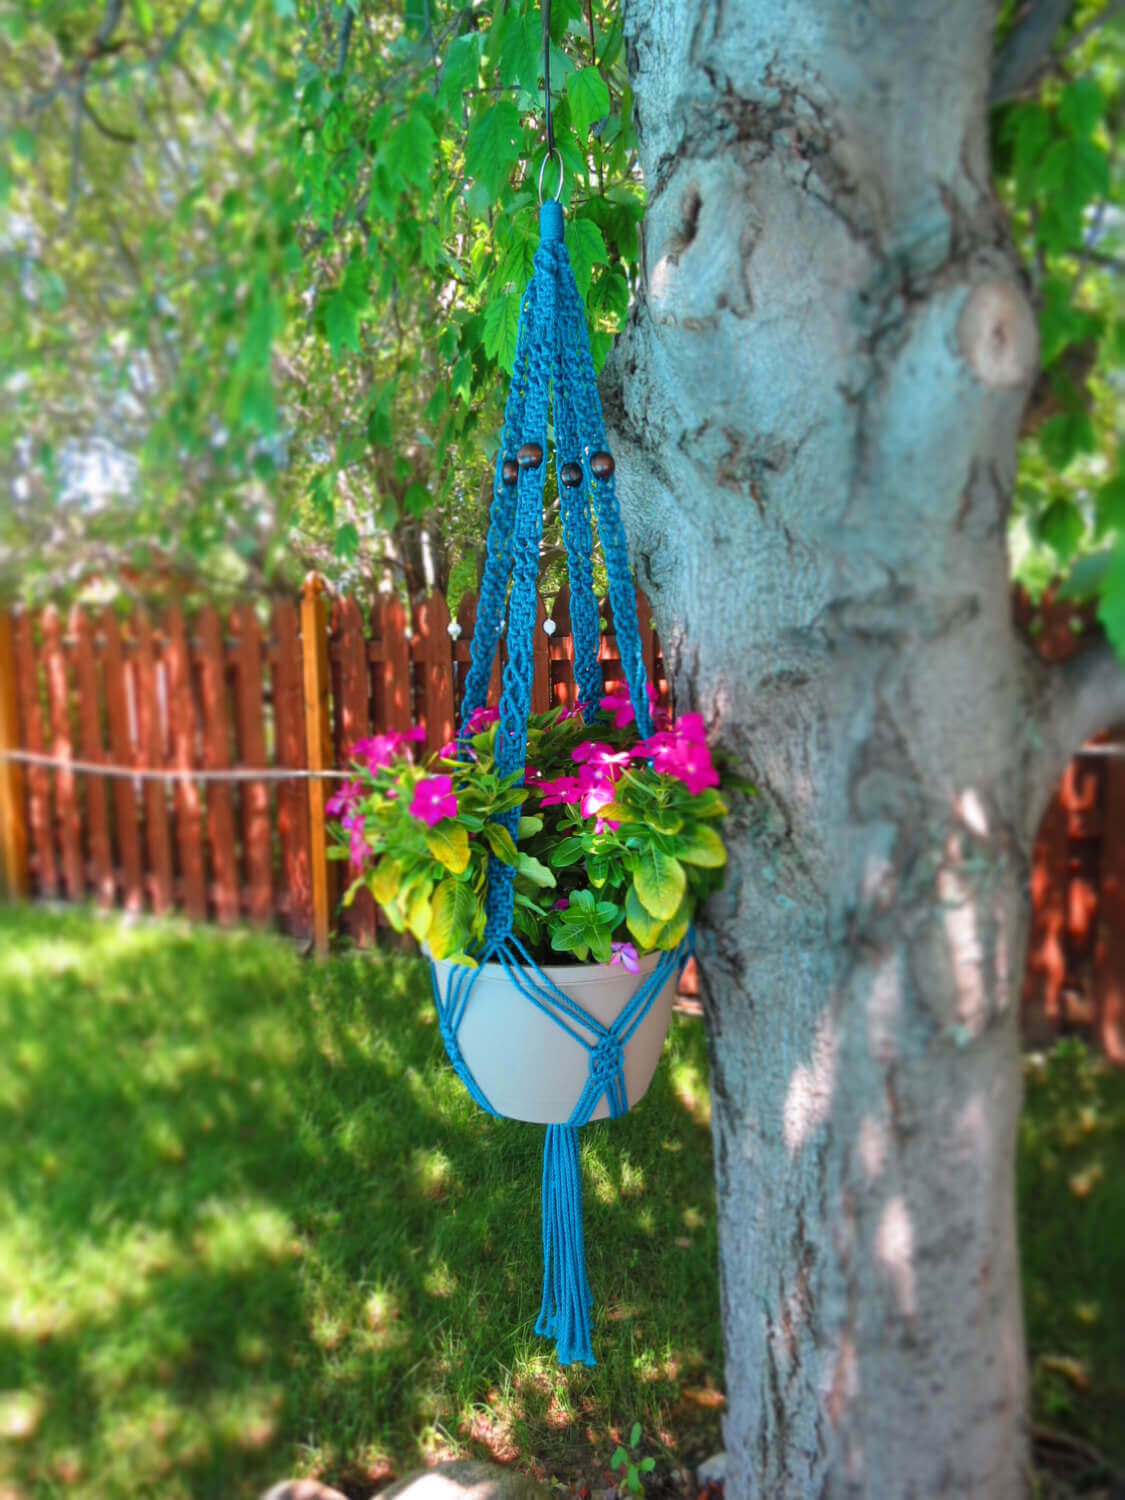 45 Best Outdoor Hanging Planter Ideas and Designs for 2017 on Plant Hanging Ideas  id=83981